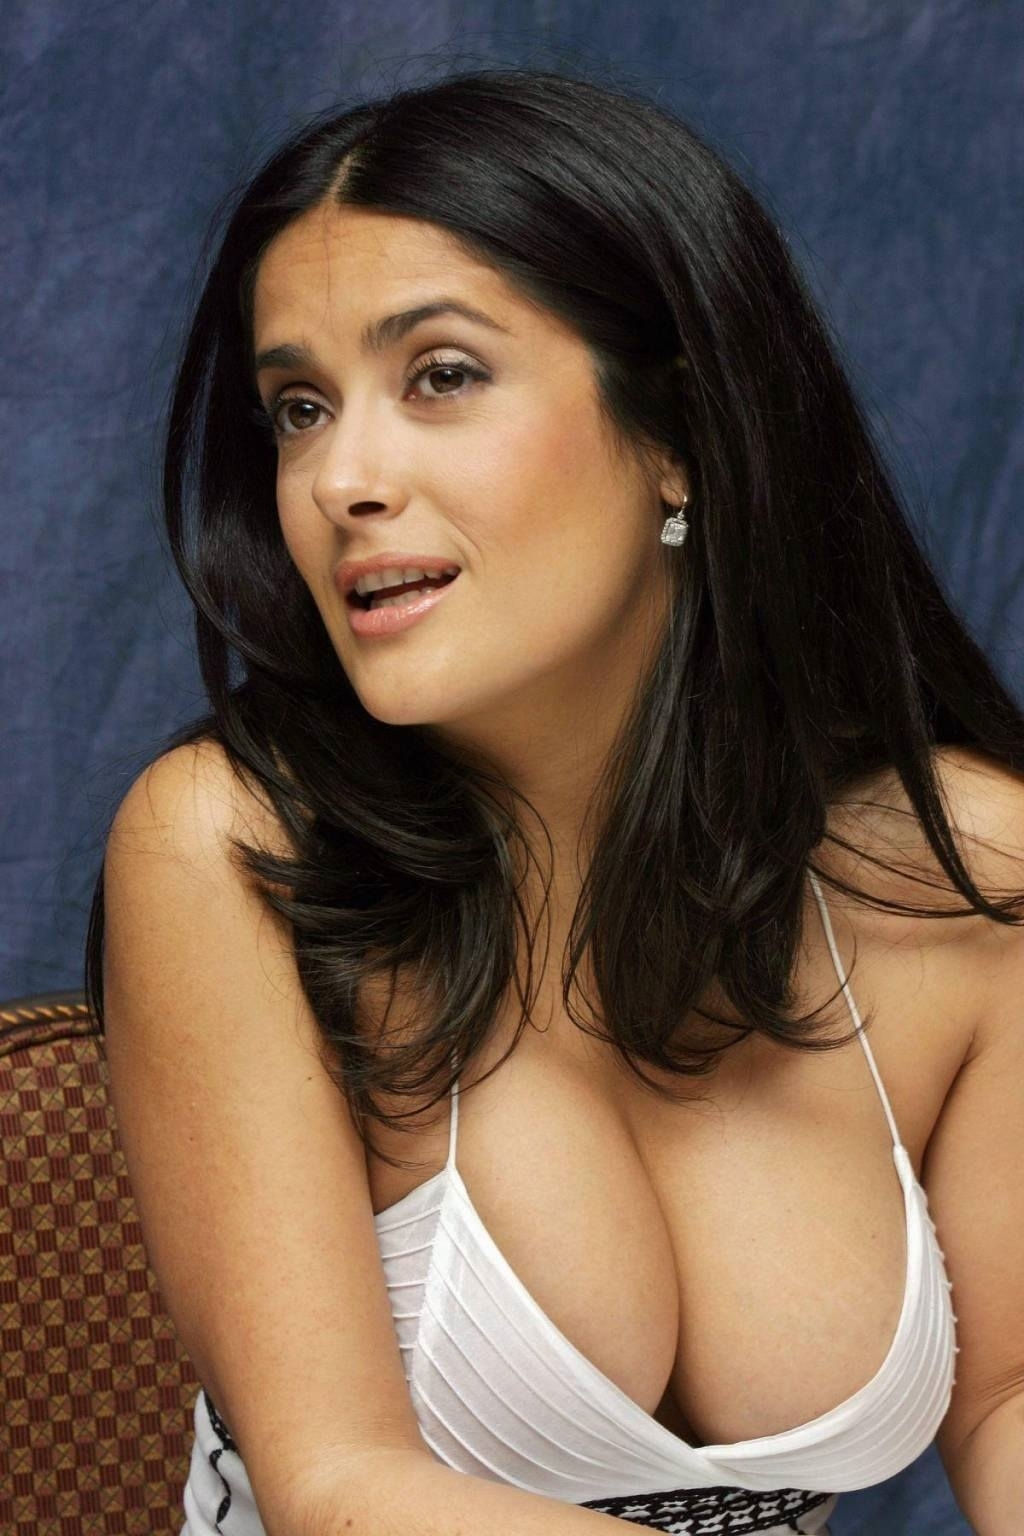 movie-star-breast-only